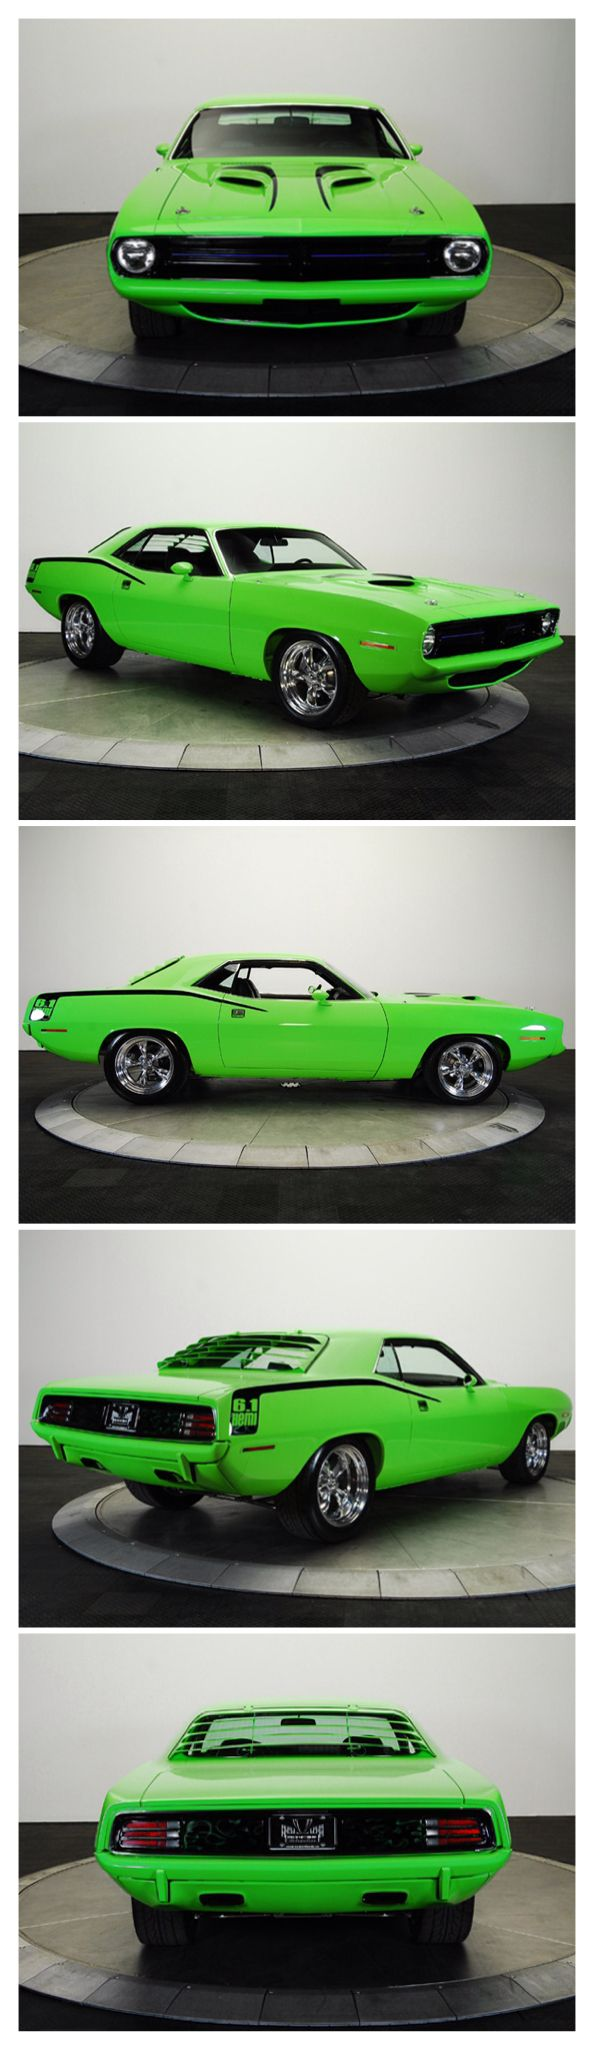 1970 #Plymouth #Barracuda #ClassicCar QuirkyRides dot com....had one of these as a teen..mine was hugger orange.